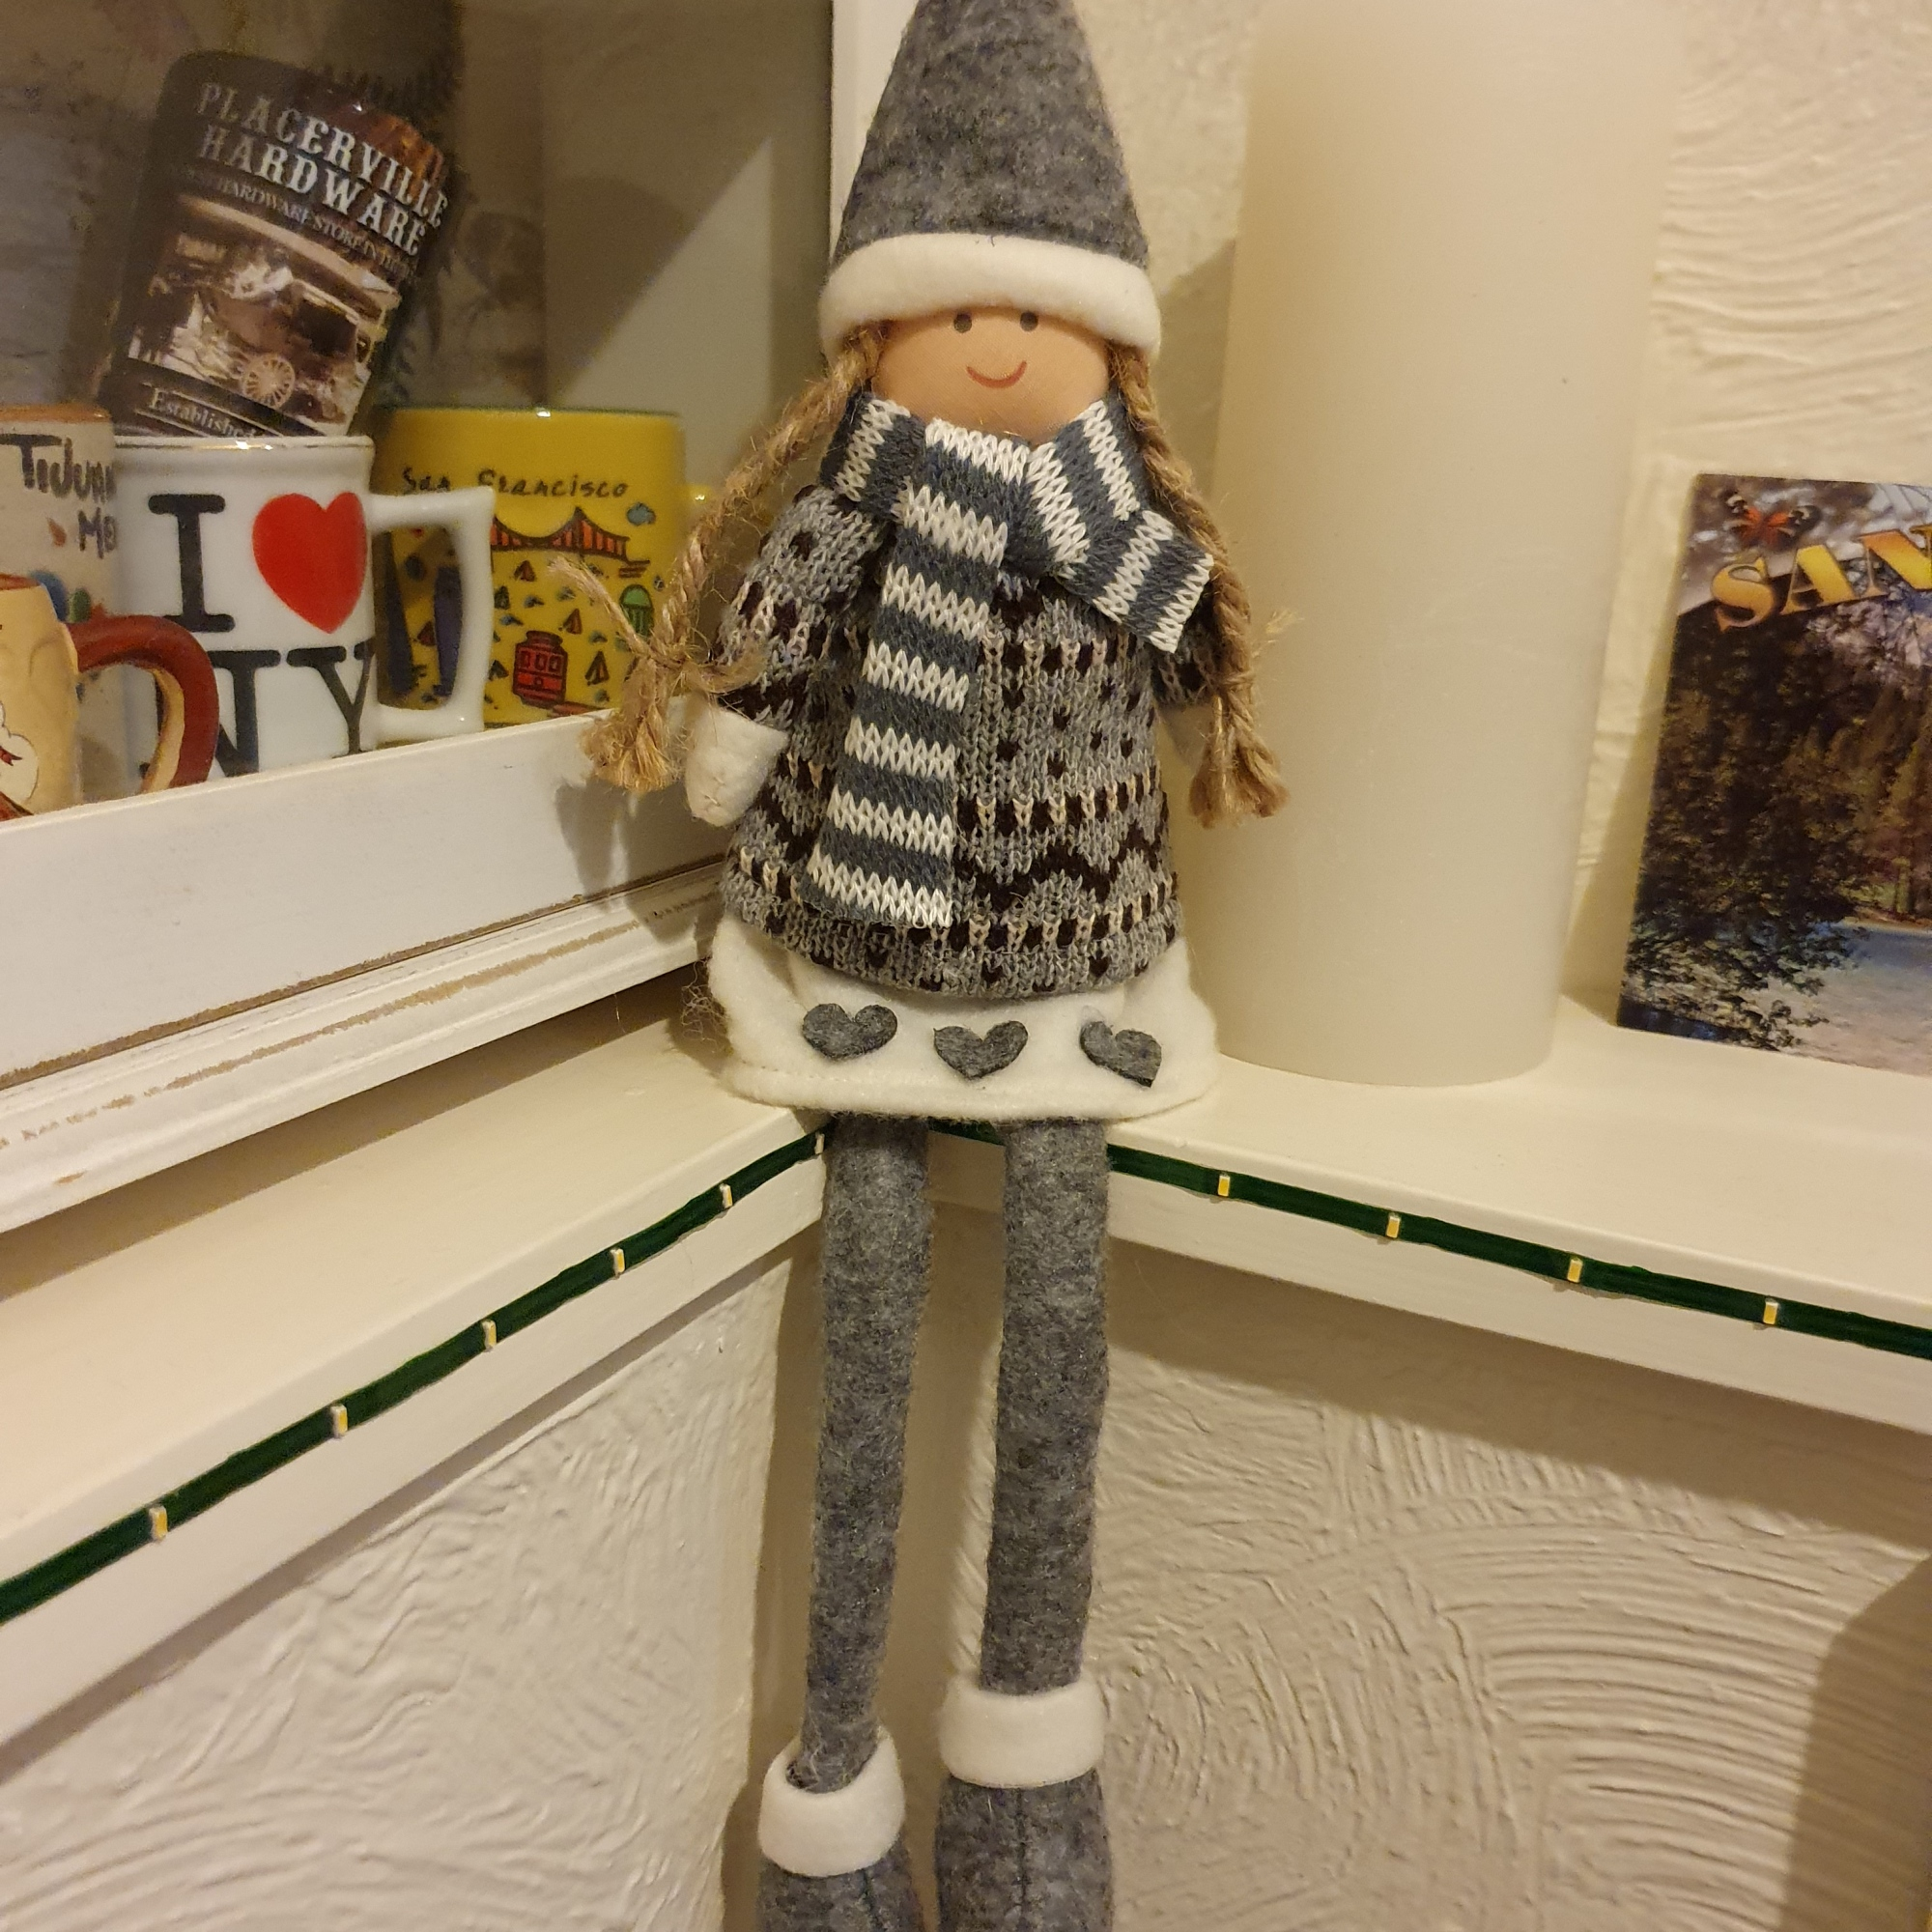 Sitting fabric dolly in grey winter outfit and scarf